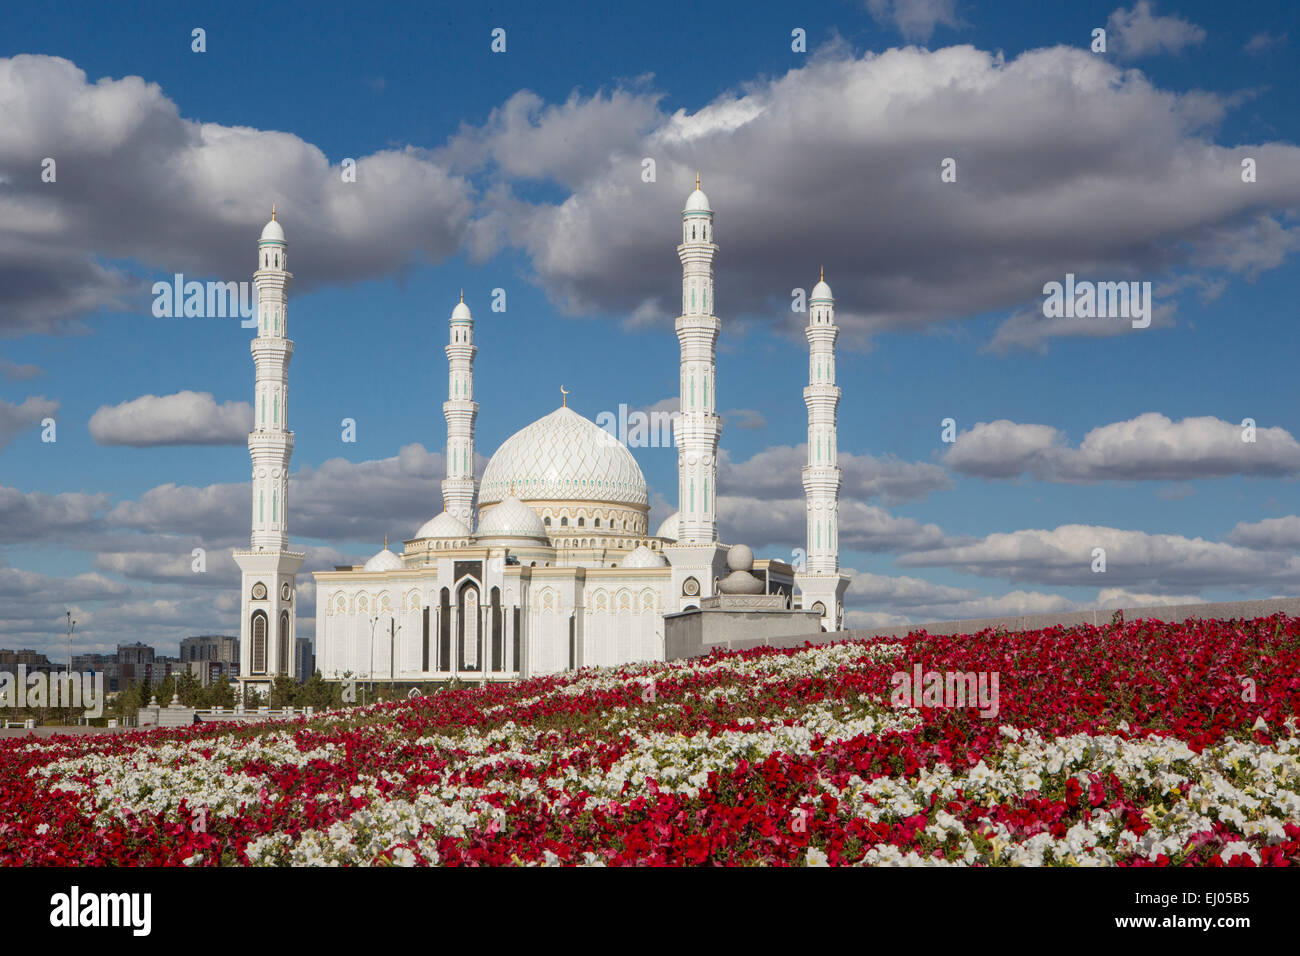 Administrative City, Astana, City, Kazakhstan, Central Asia, Monument, Monument, Hazret Sultan, Mosque, New, Summer, - Stock Image